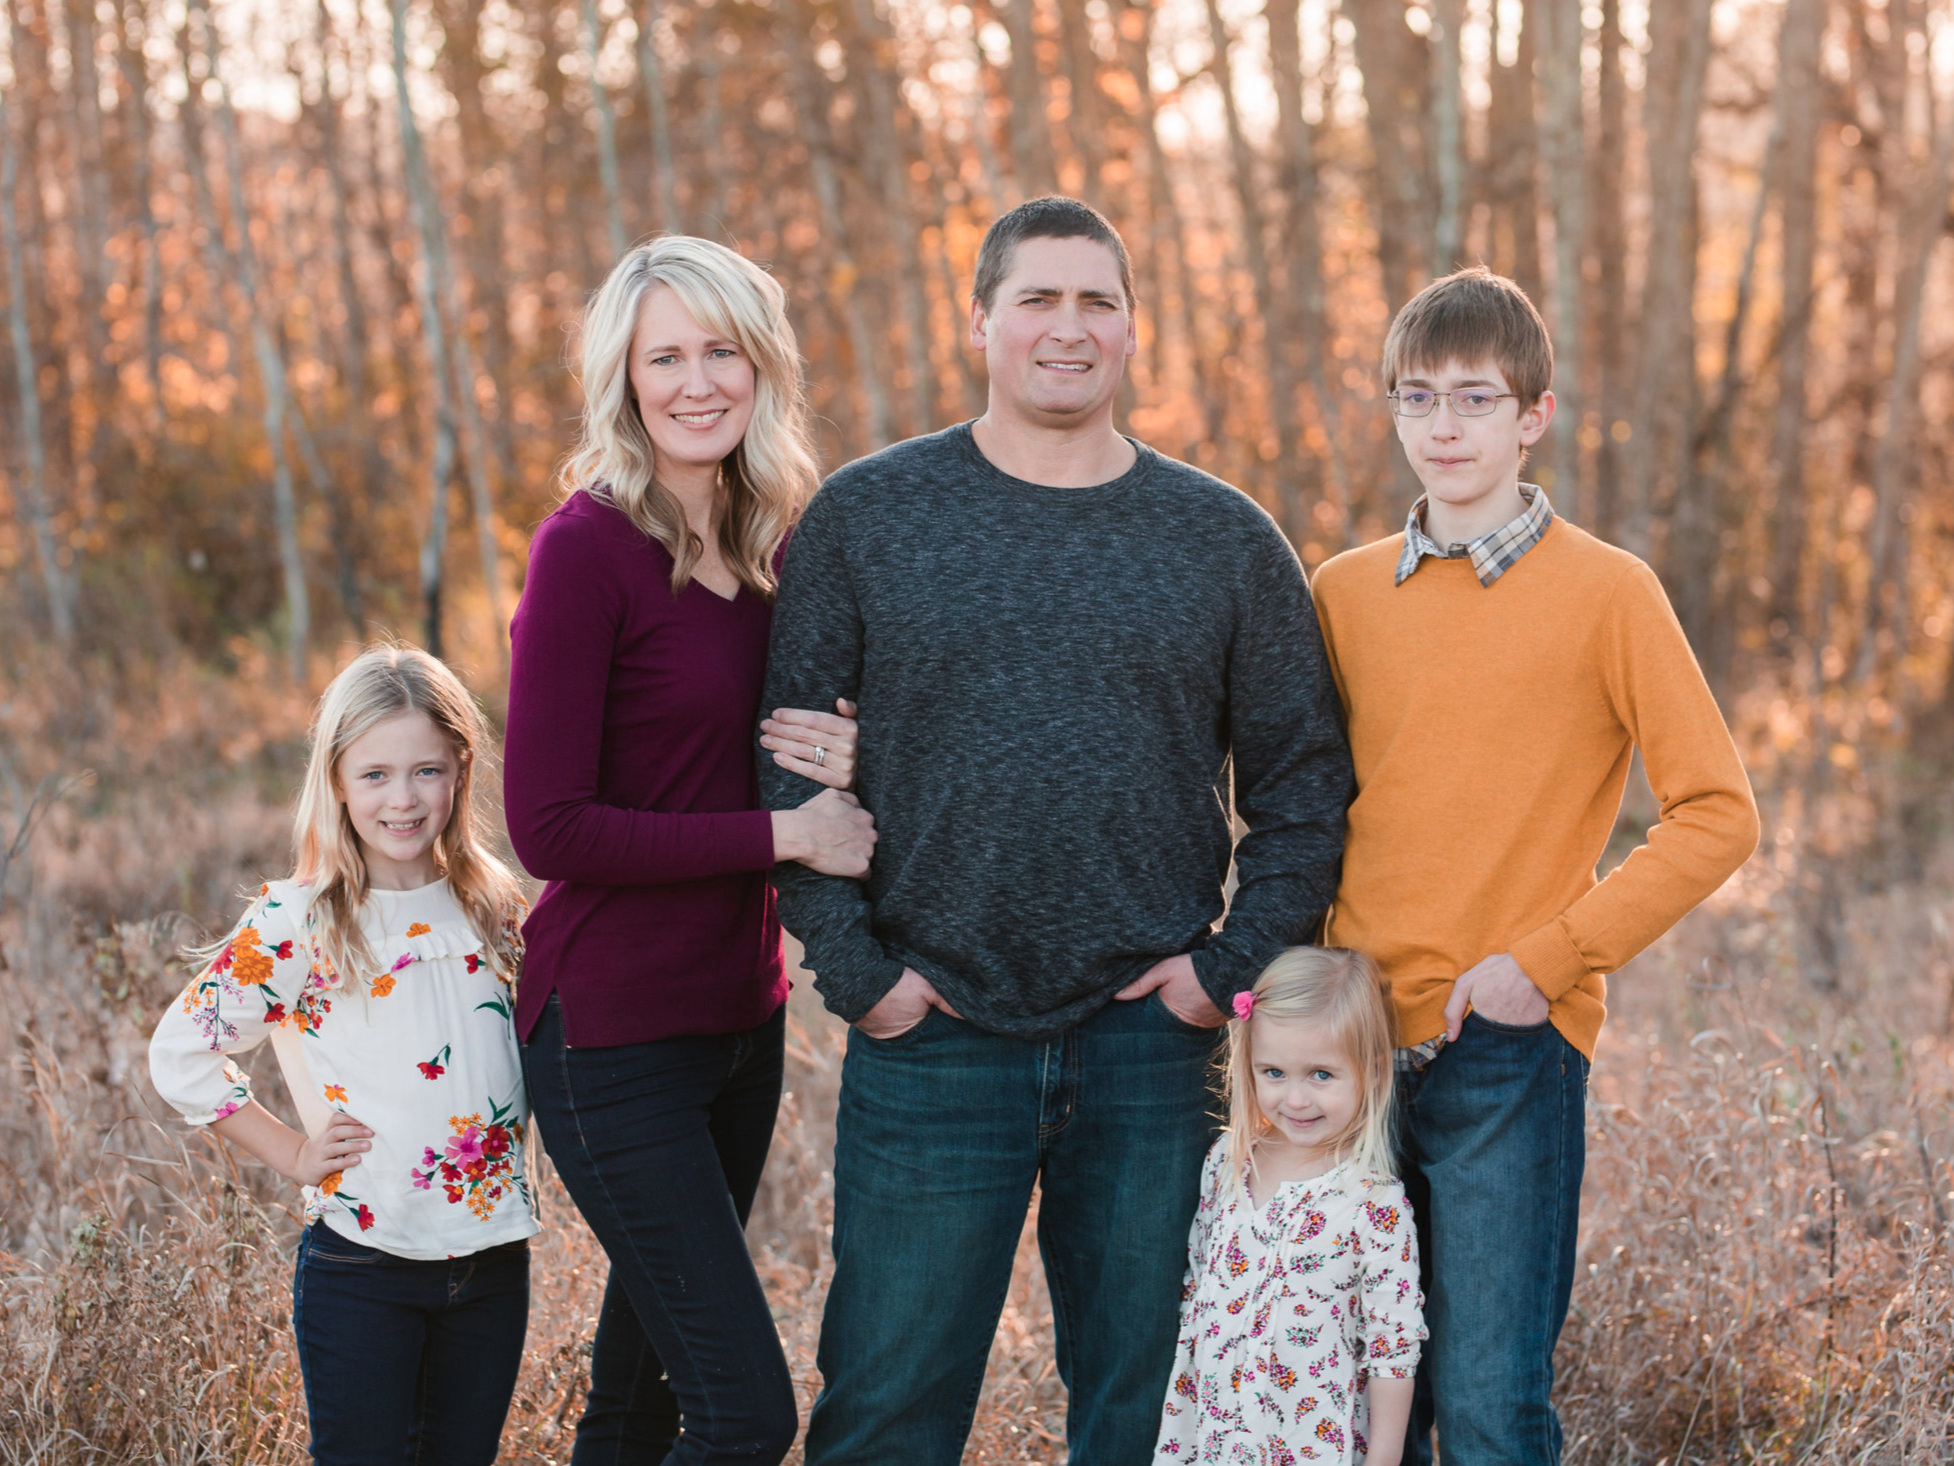 Family Session + Digital Images - Includes appx 45 min of photography timeImmediate family onlyPerfect for 1 Outfit and 1-2 Locations40+ digital images with print release$400 + tax